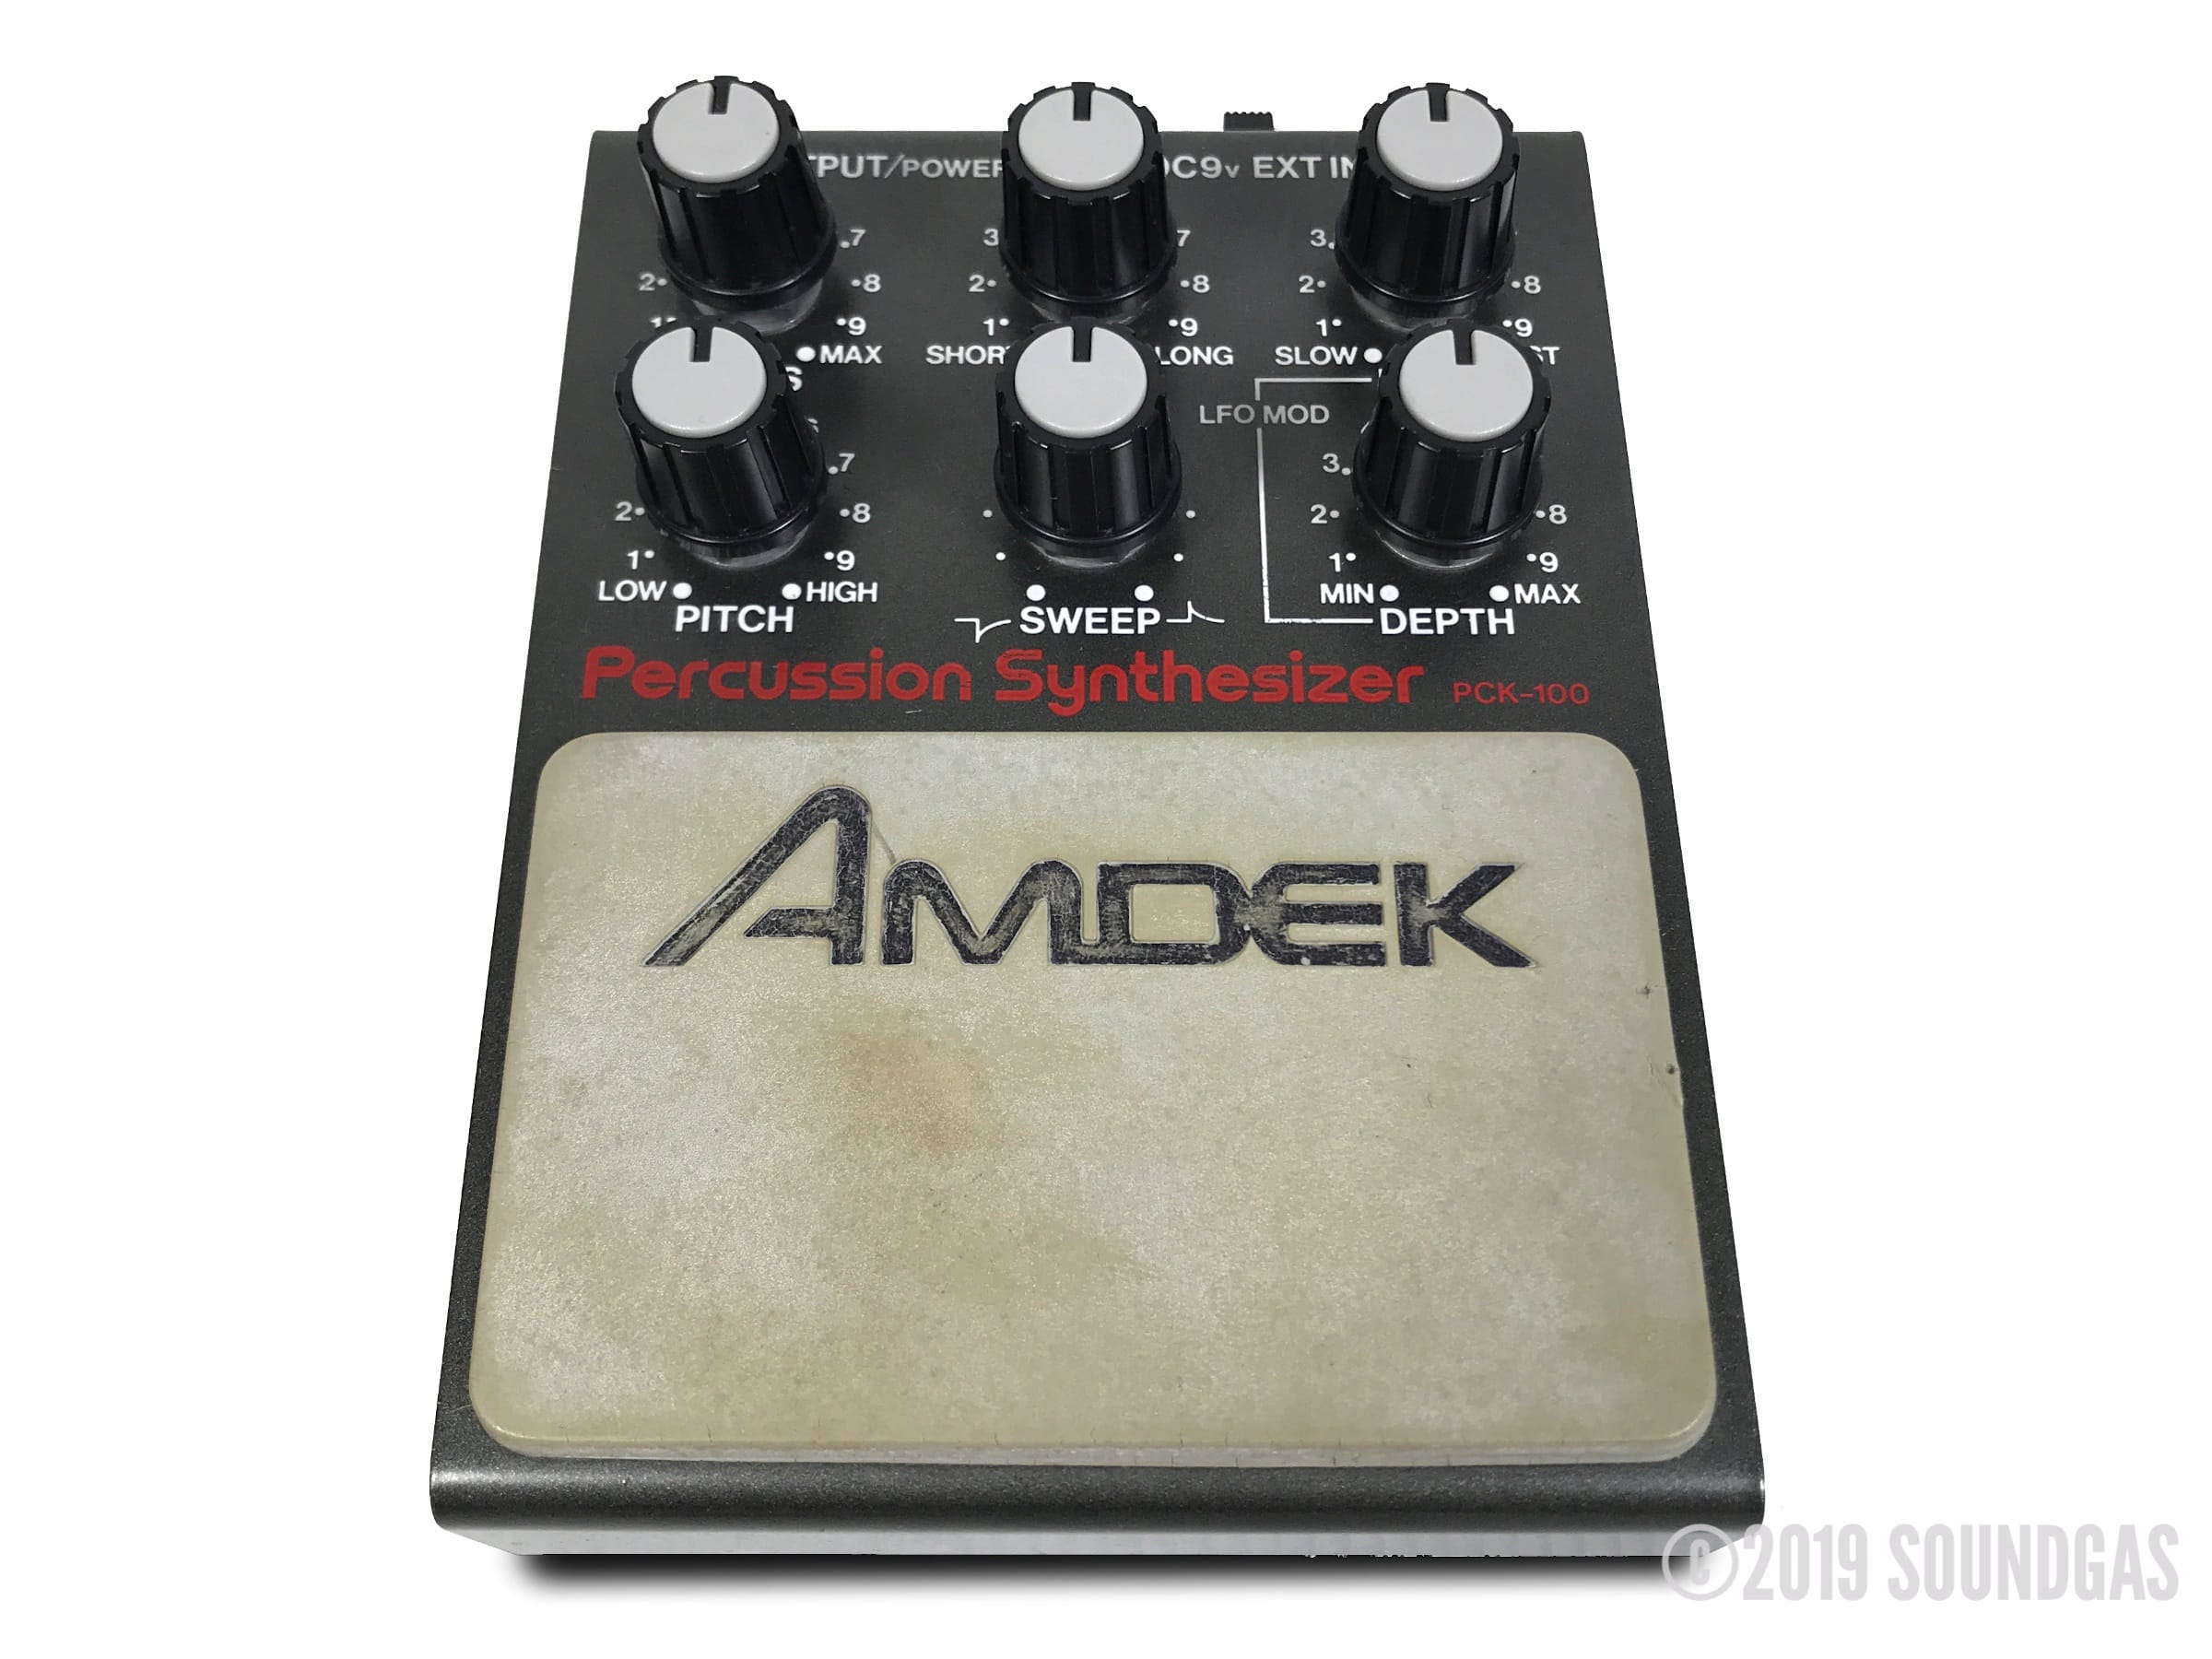 Amdek-PCK-100-Percussion-Synthesizer-Cover-2